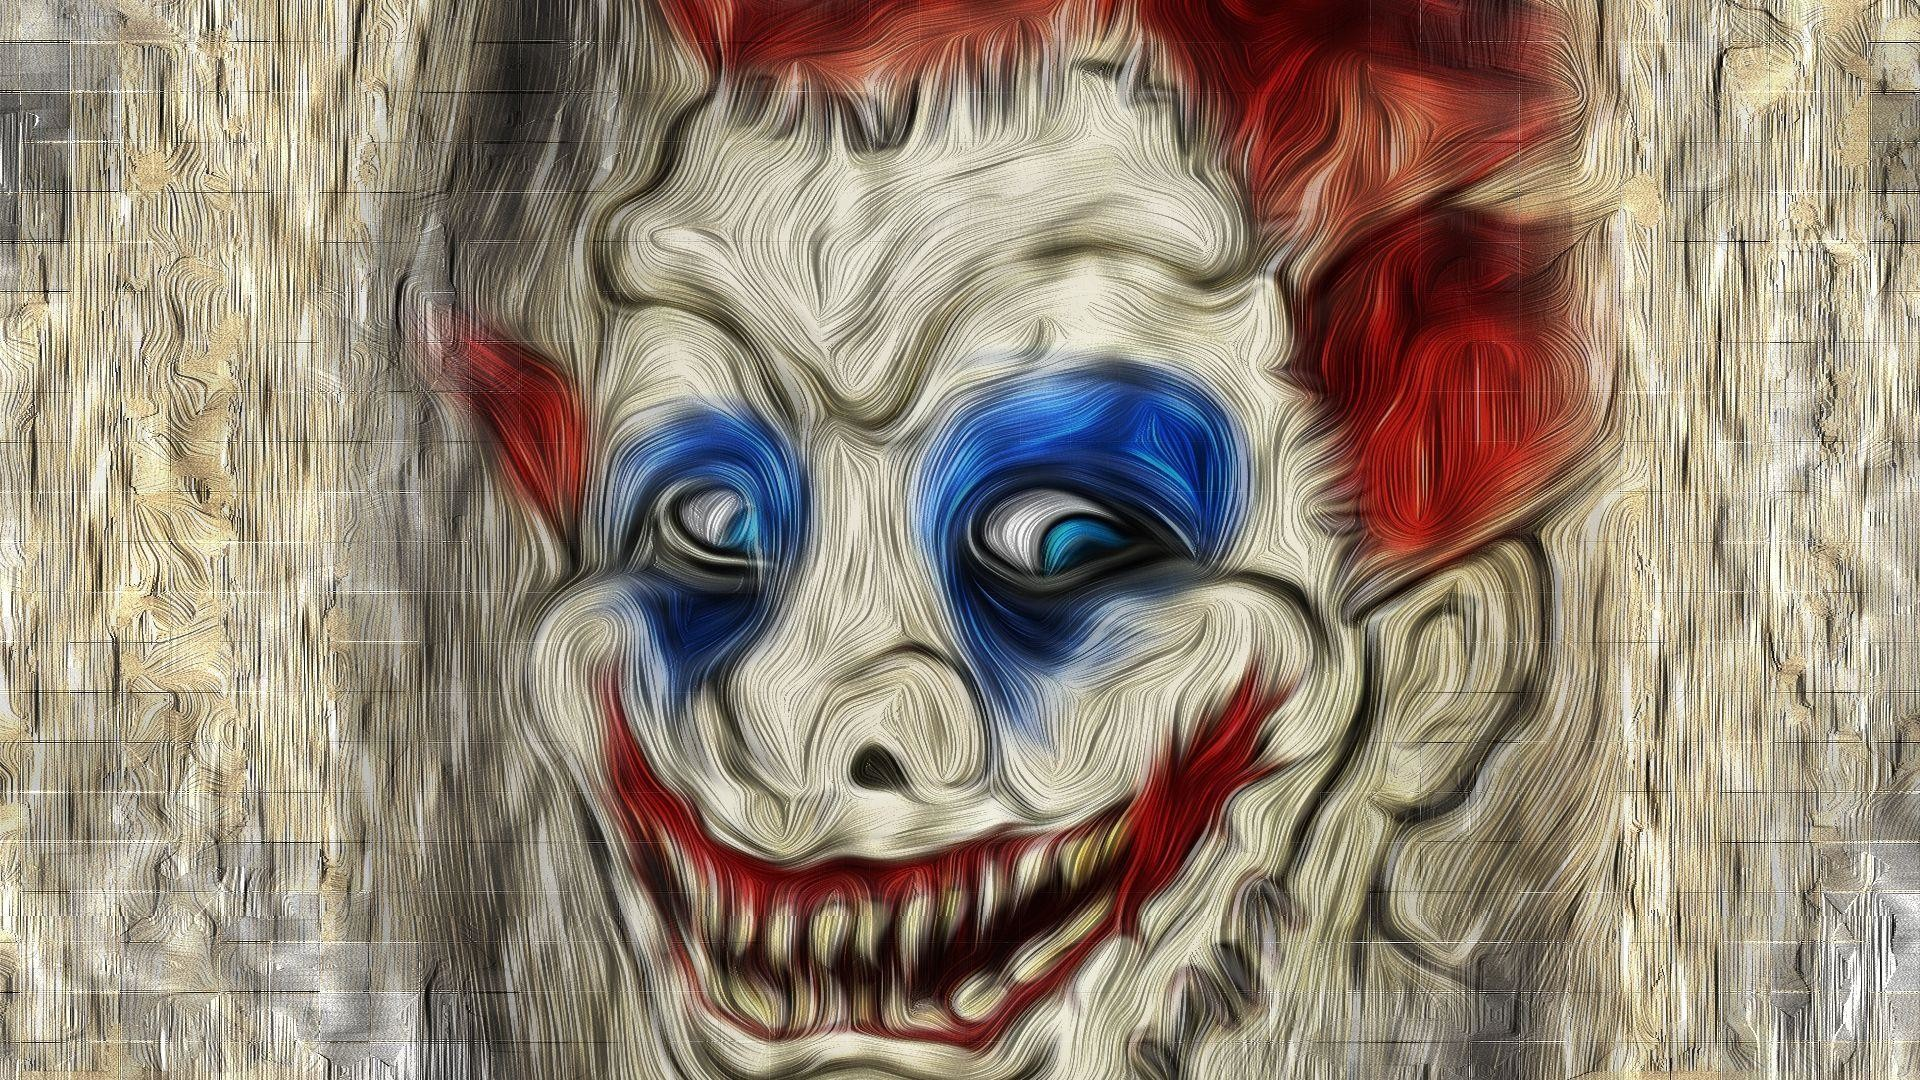 Res: 1920x1080, Scary clown face